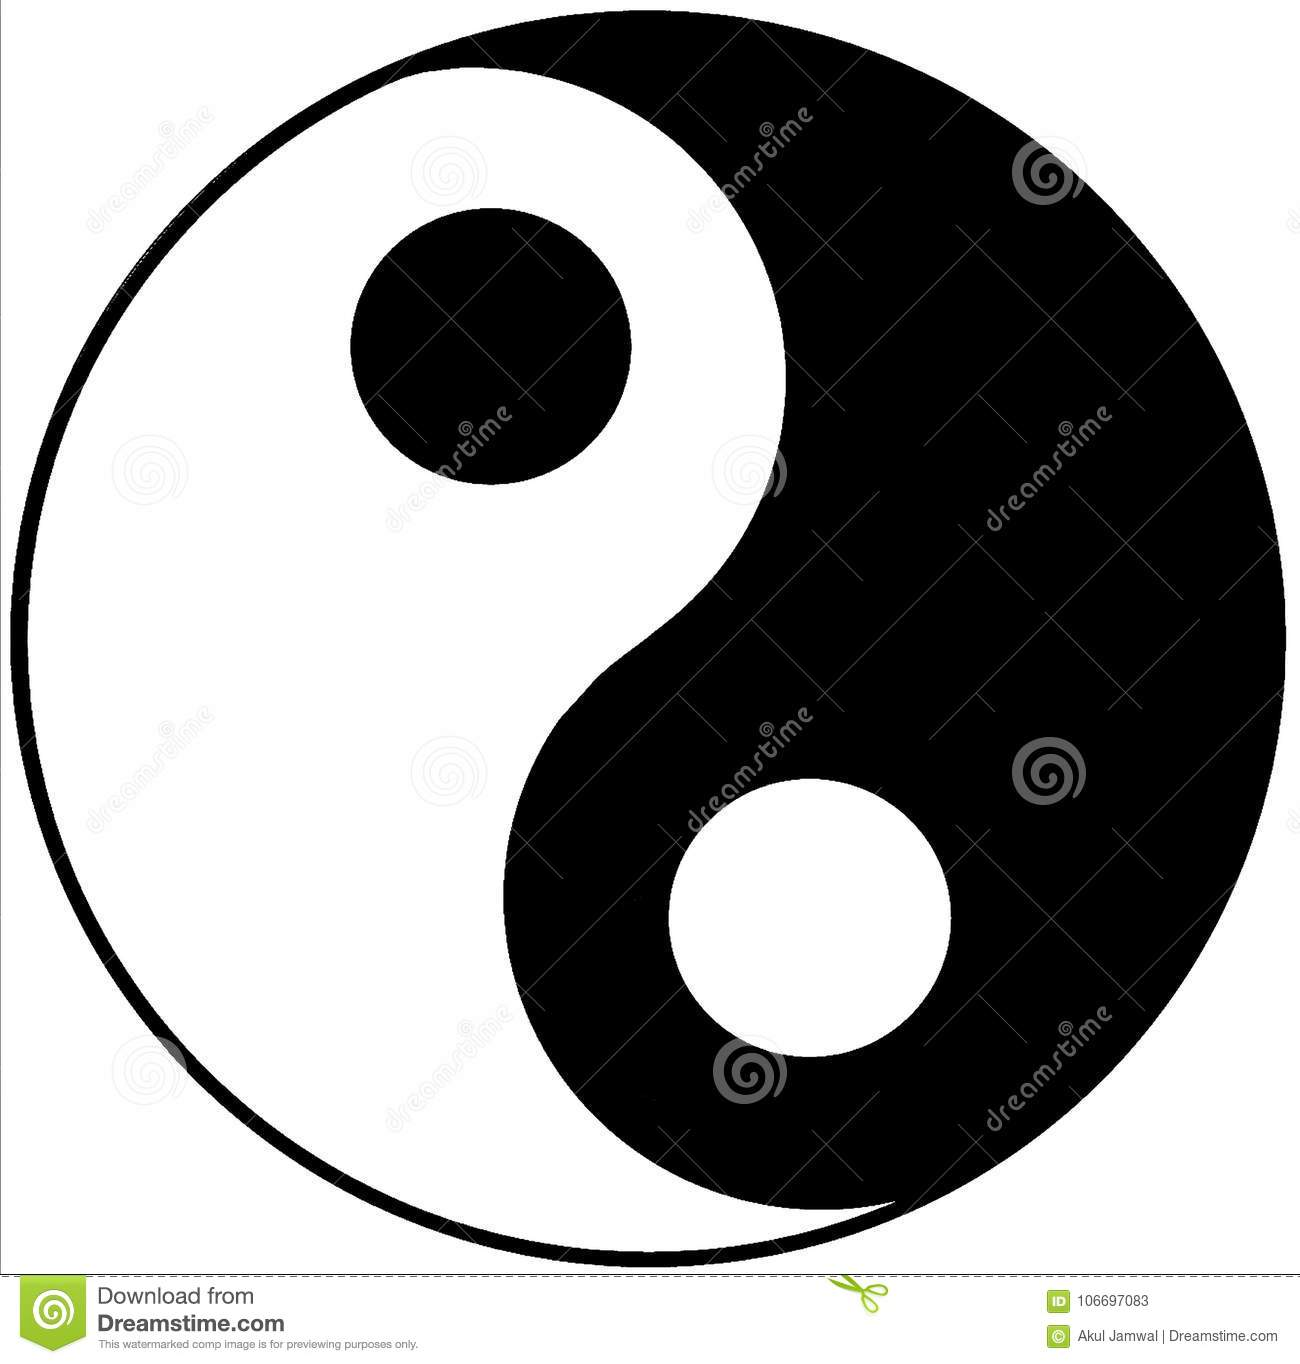 yin yang vector illustration stock illustration illustration of rh dreamstime com Yin and Yang Meaning Love Yin Yang Color Meaning